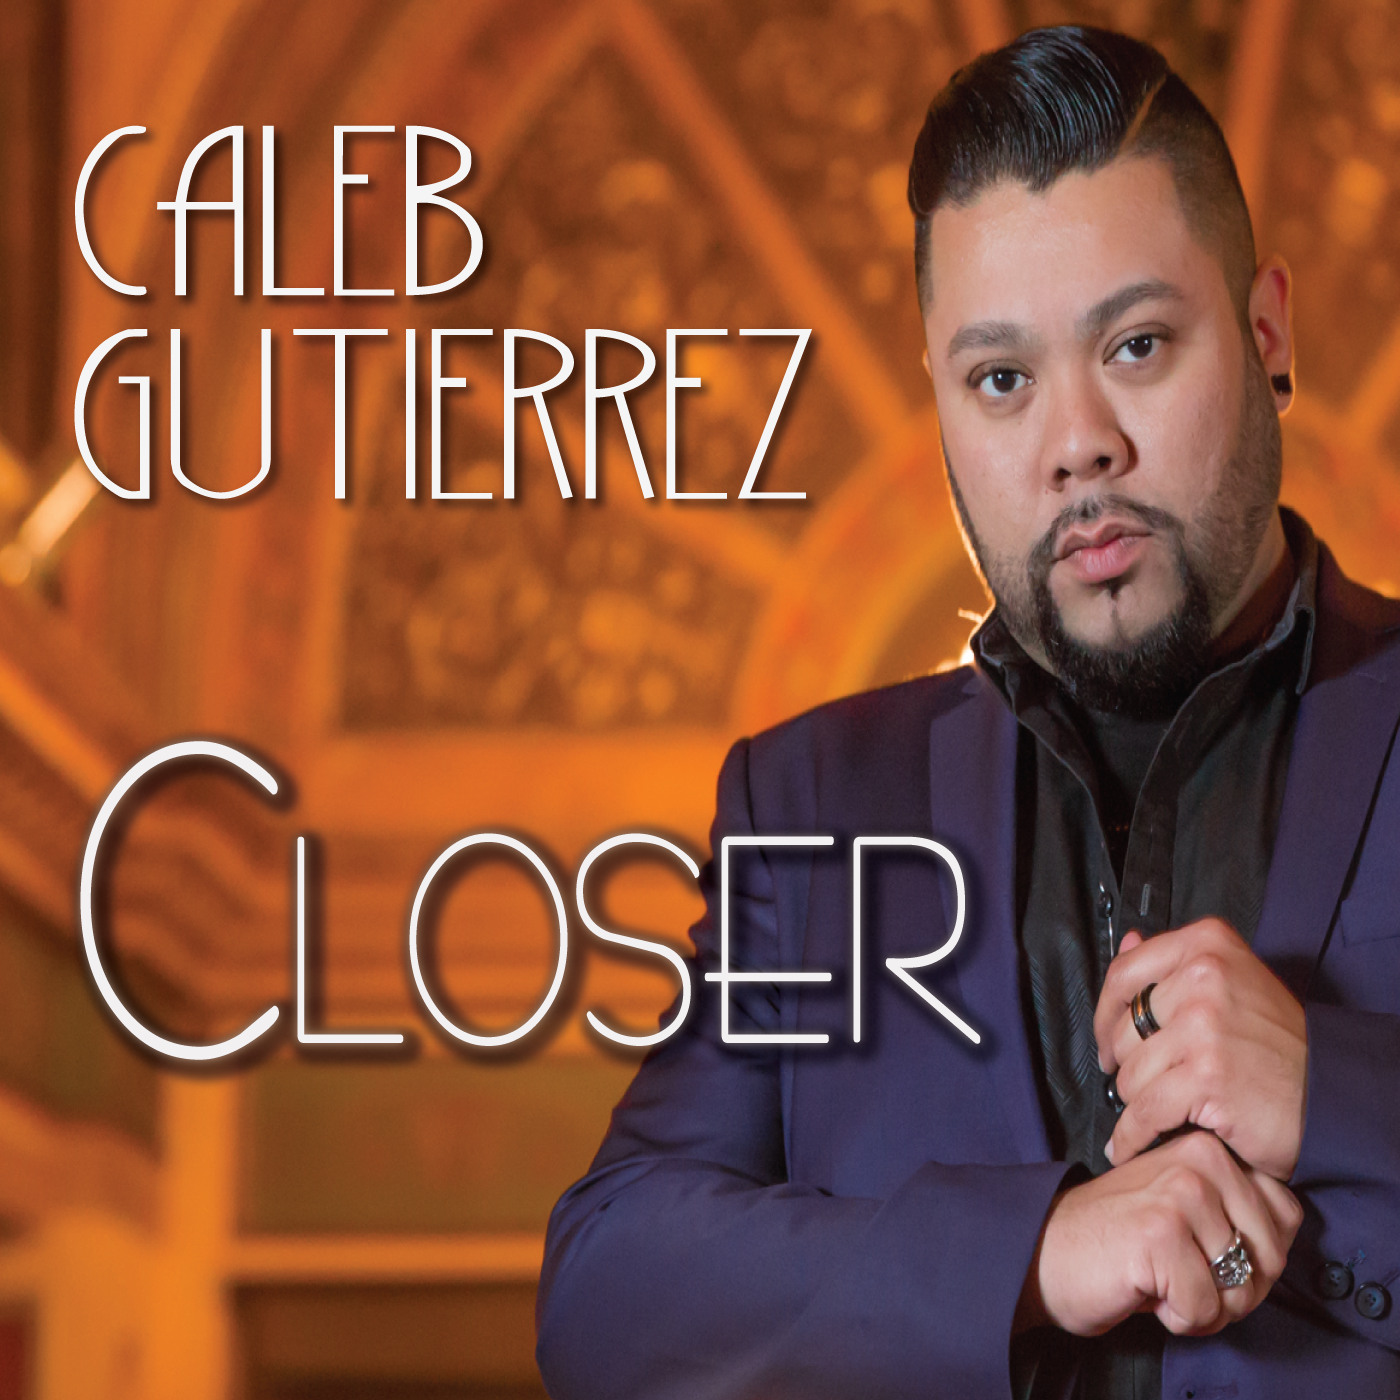 Caleb Gutierrez - Closer (digital single)